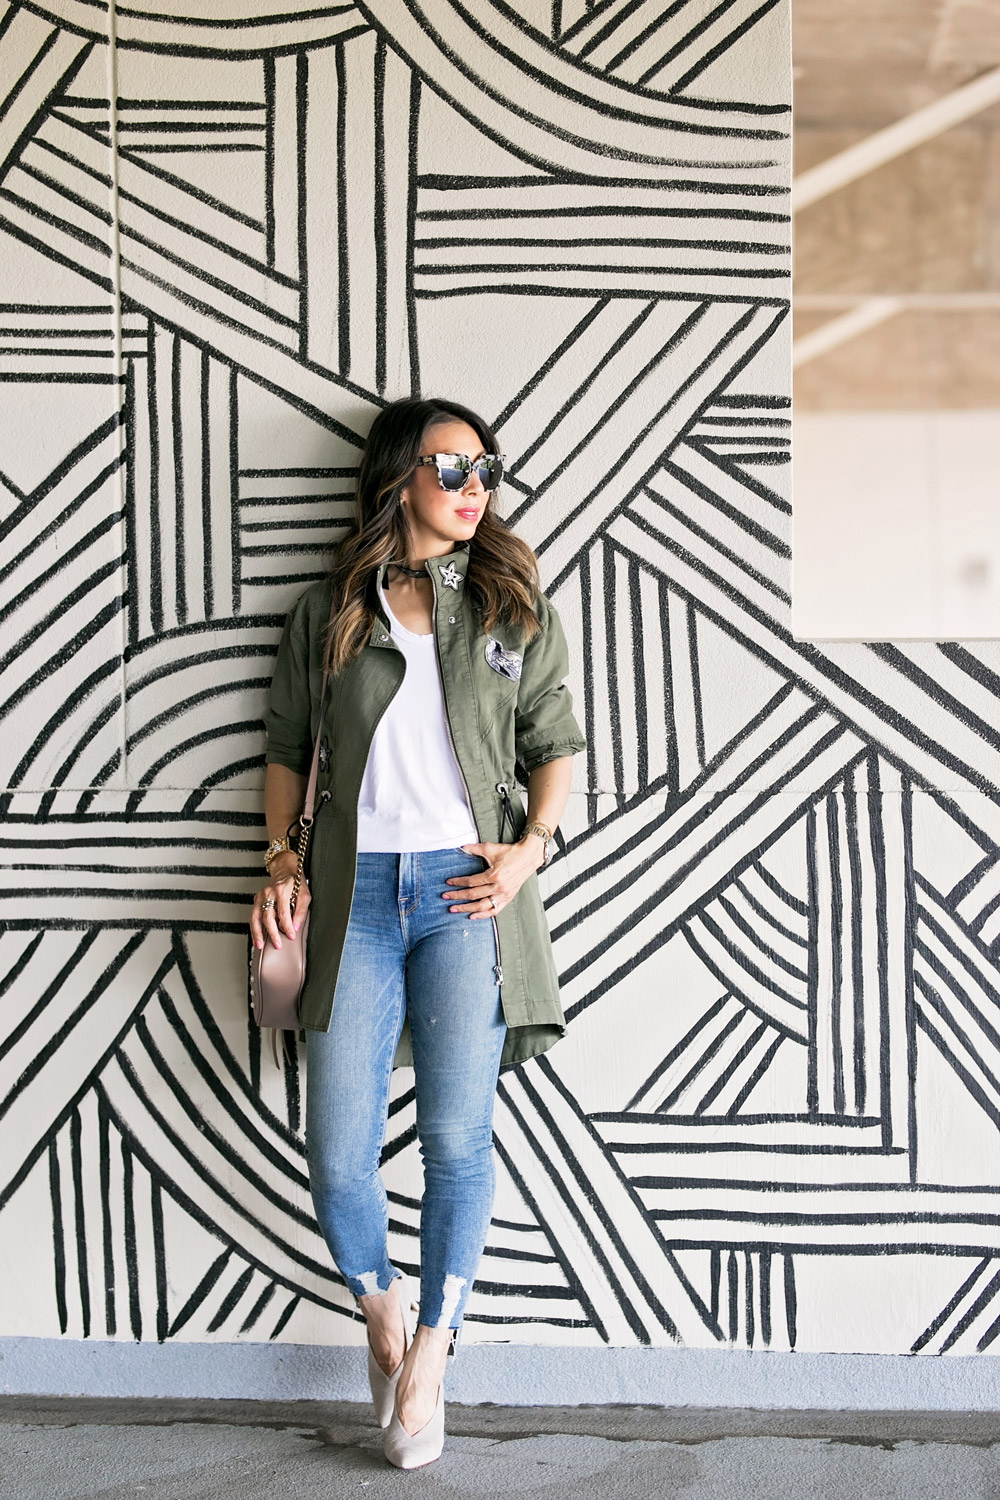 cabi hanson anorak embellished army green jacket white tee good american high waist skinny jeans vince camuto ankia pump